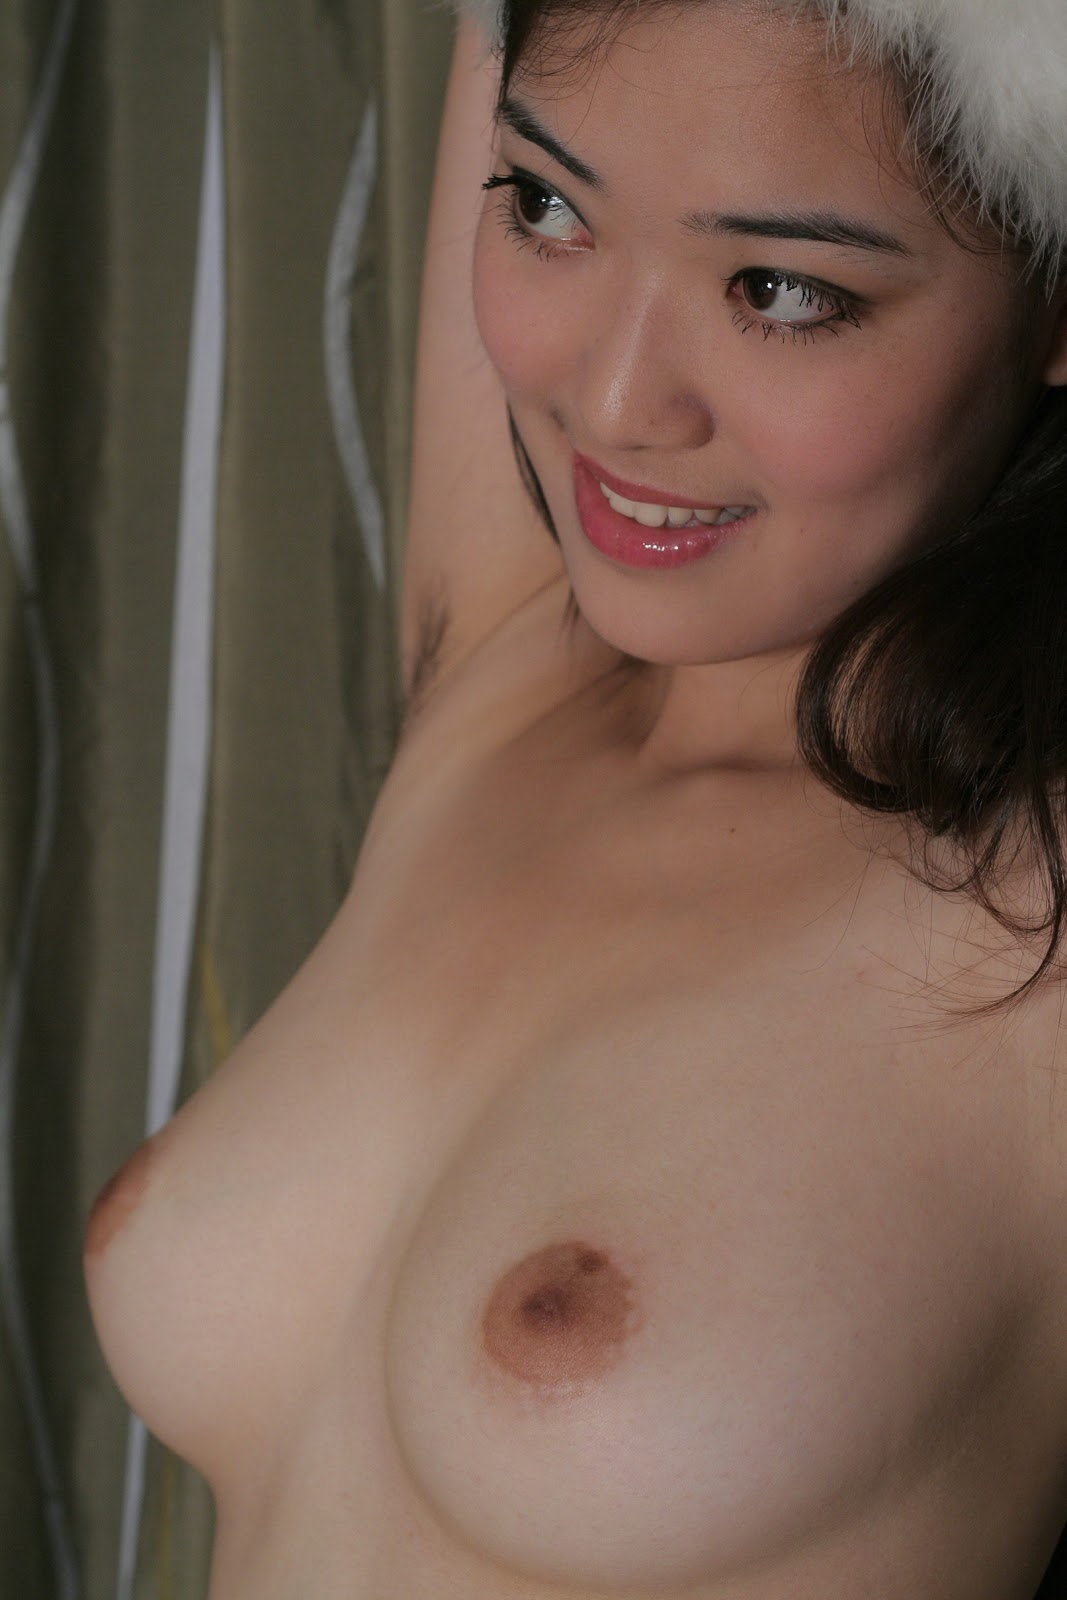 Chinese Nude_Art_Photos_-_242_-_XiaoYou_Vol_1.rar